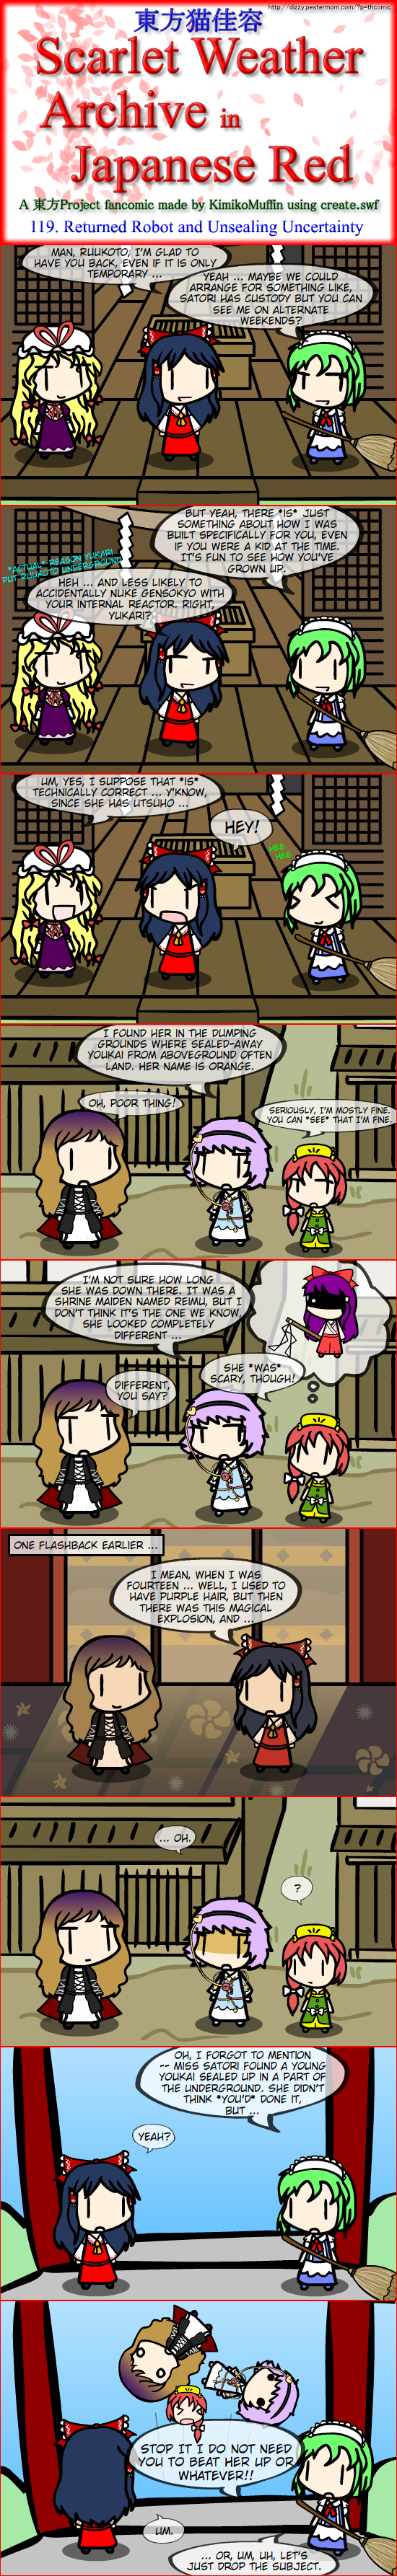 Touhou Nekokayou: Scarlet Weather Archive in Japanese Red #119